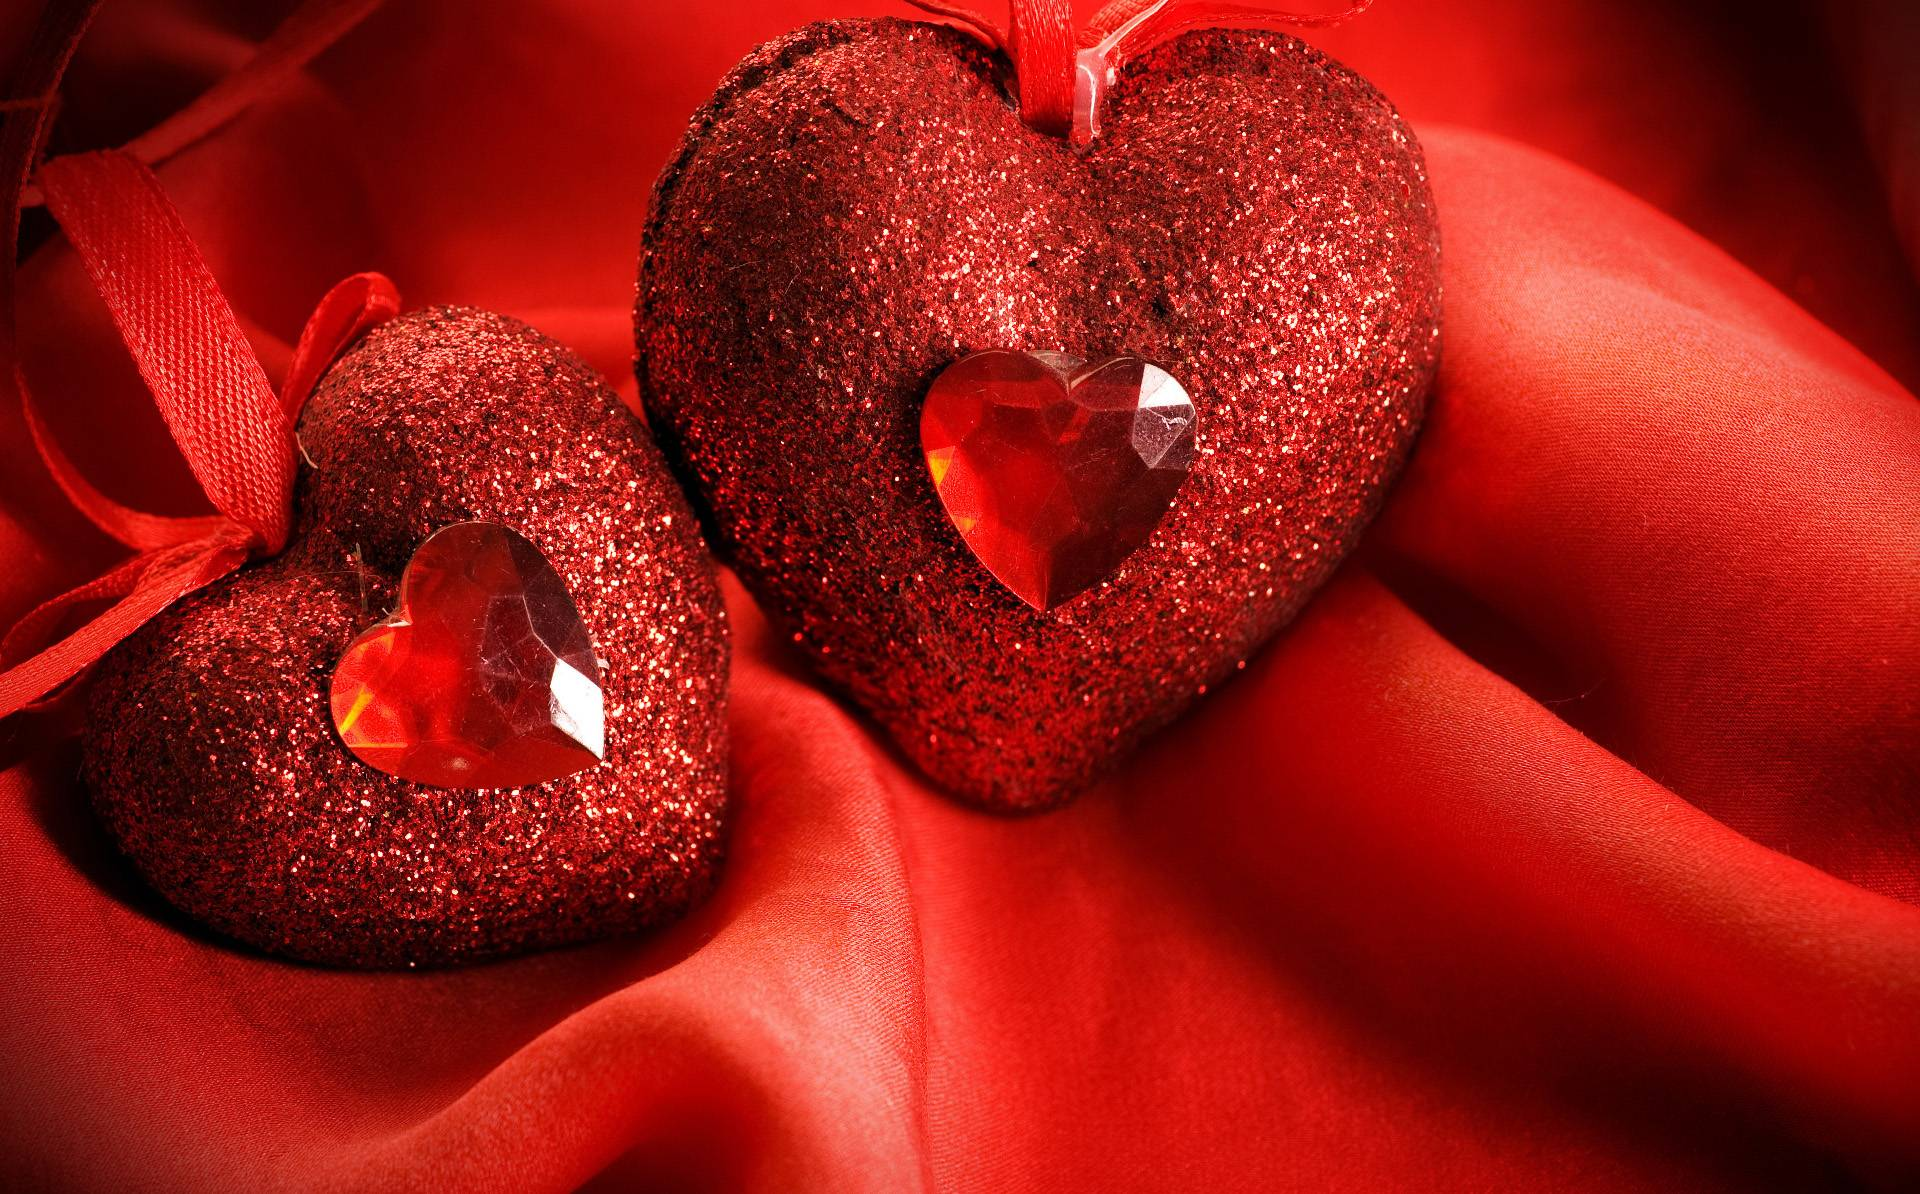 Beautiful Love Wallpaper Free : Love Heart Wallpapers HD - Wallpaper cave